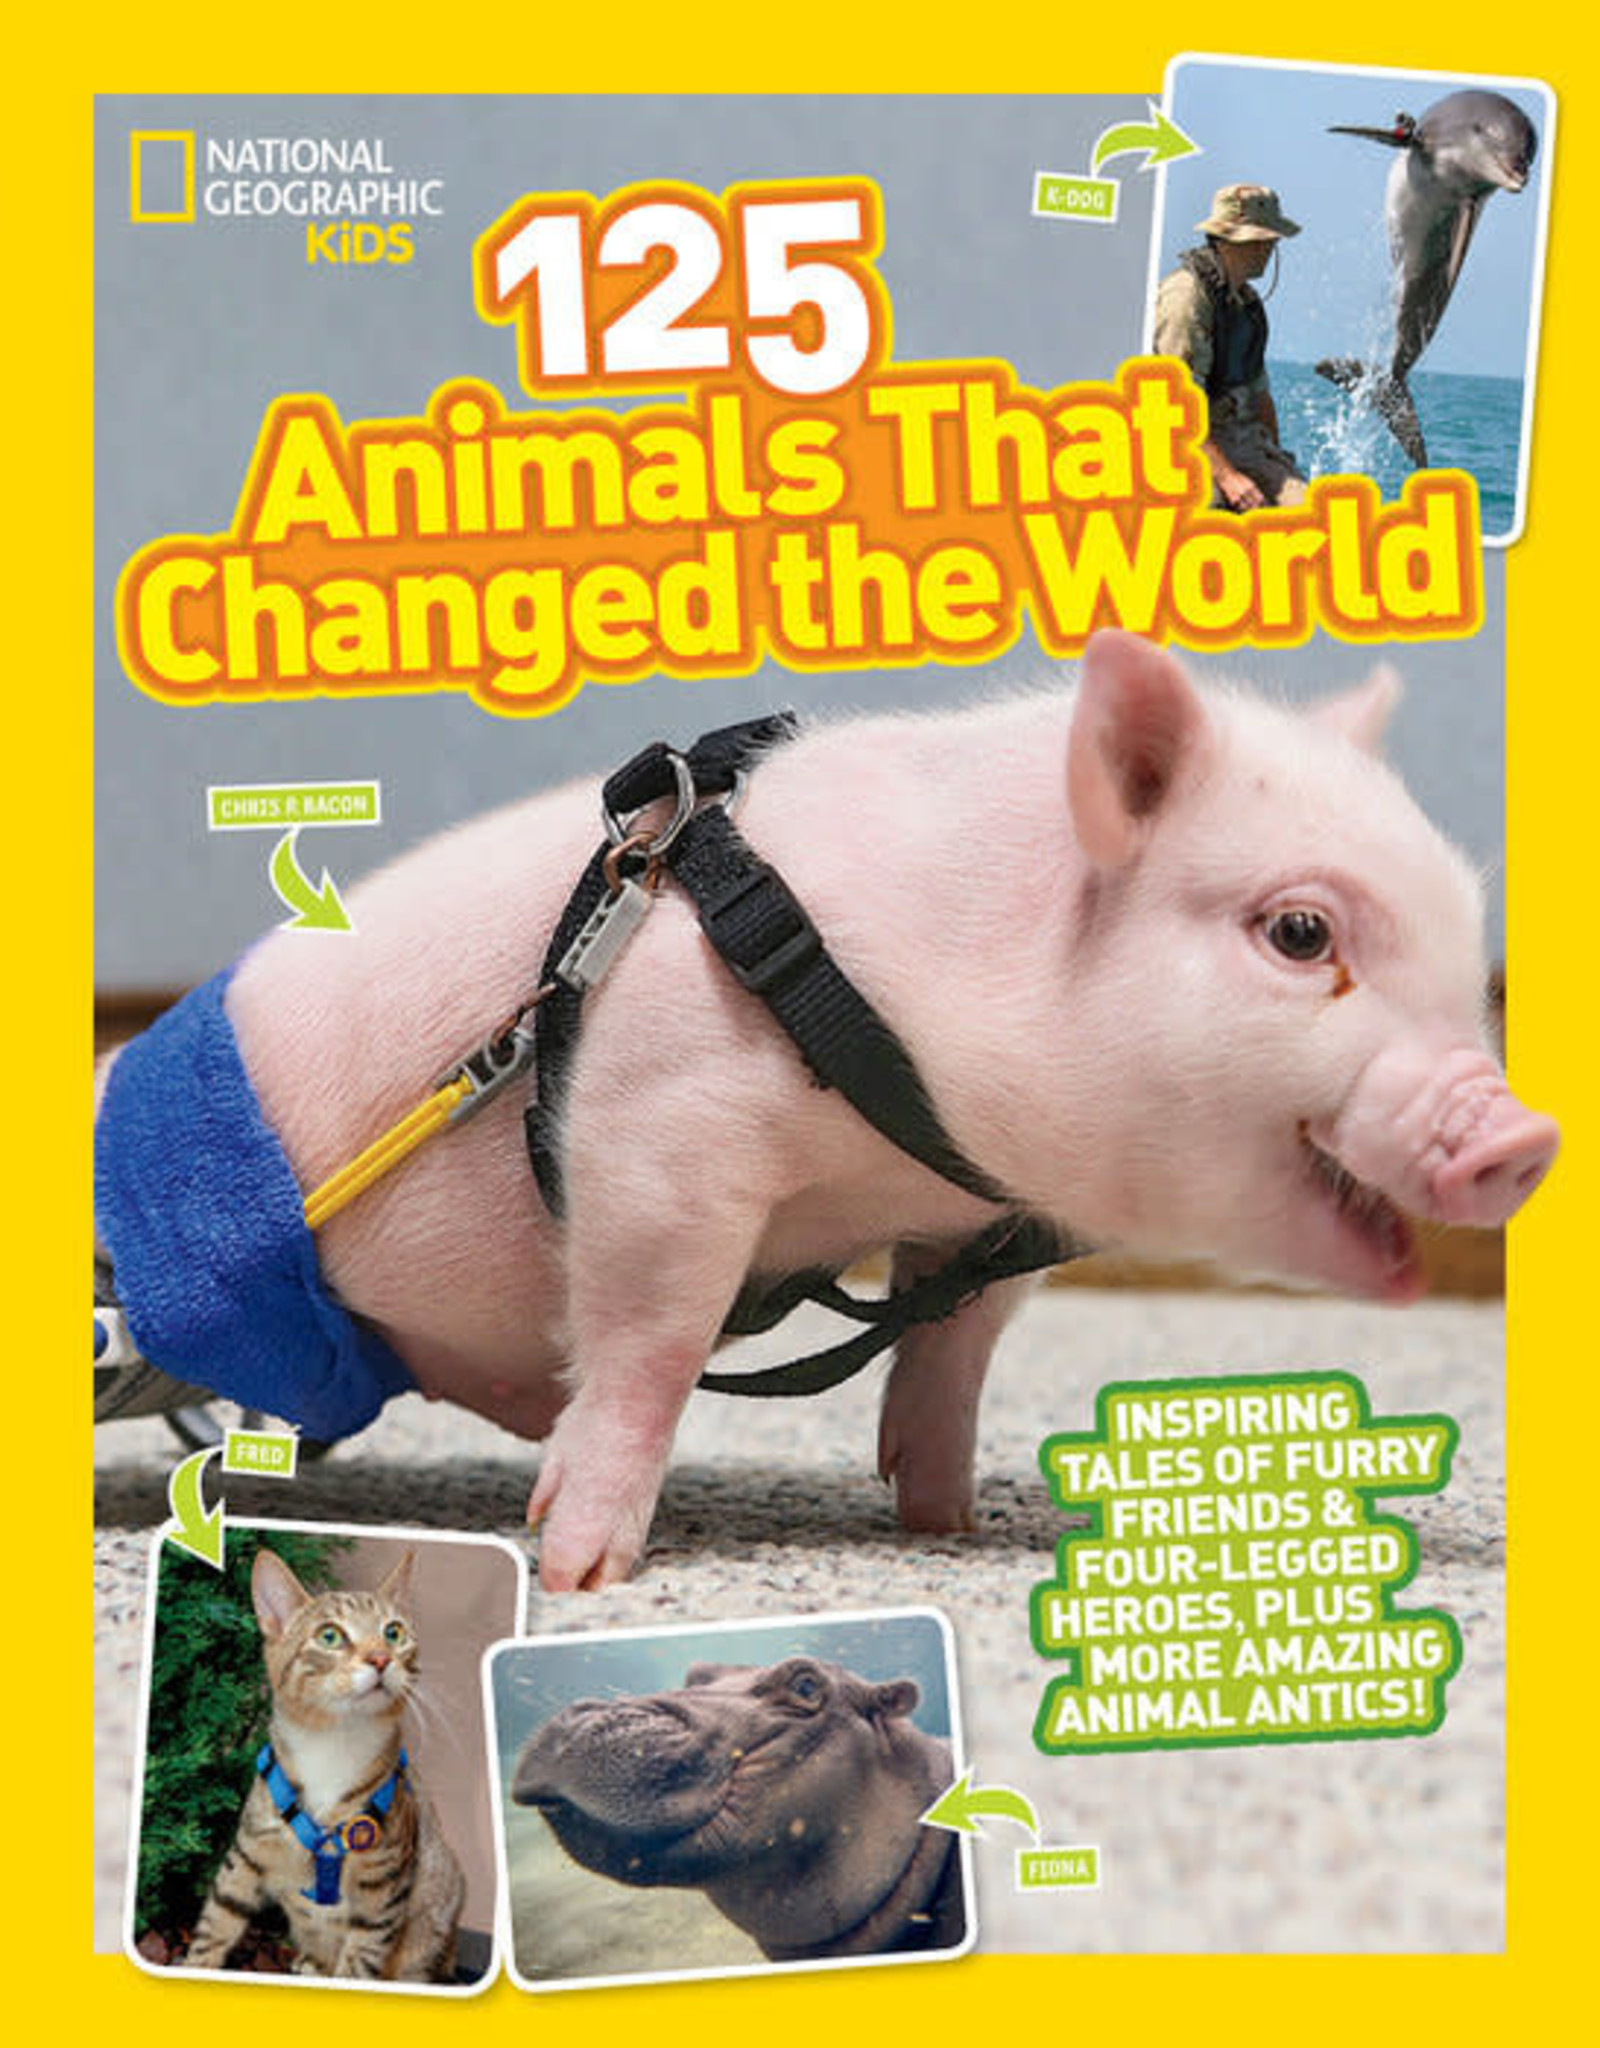 National Geographic Kids (NGK) NGK 125 Animals That Changed the World